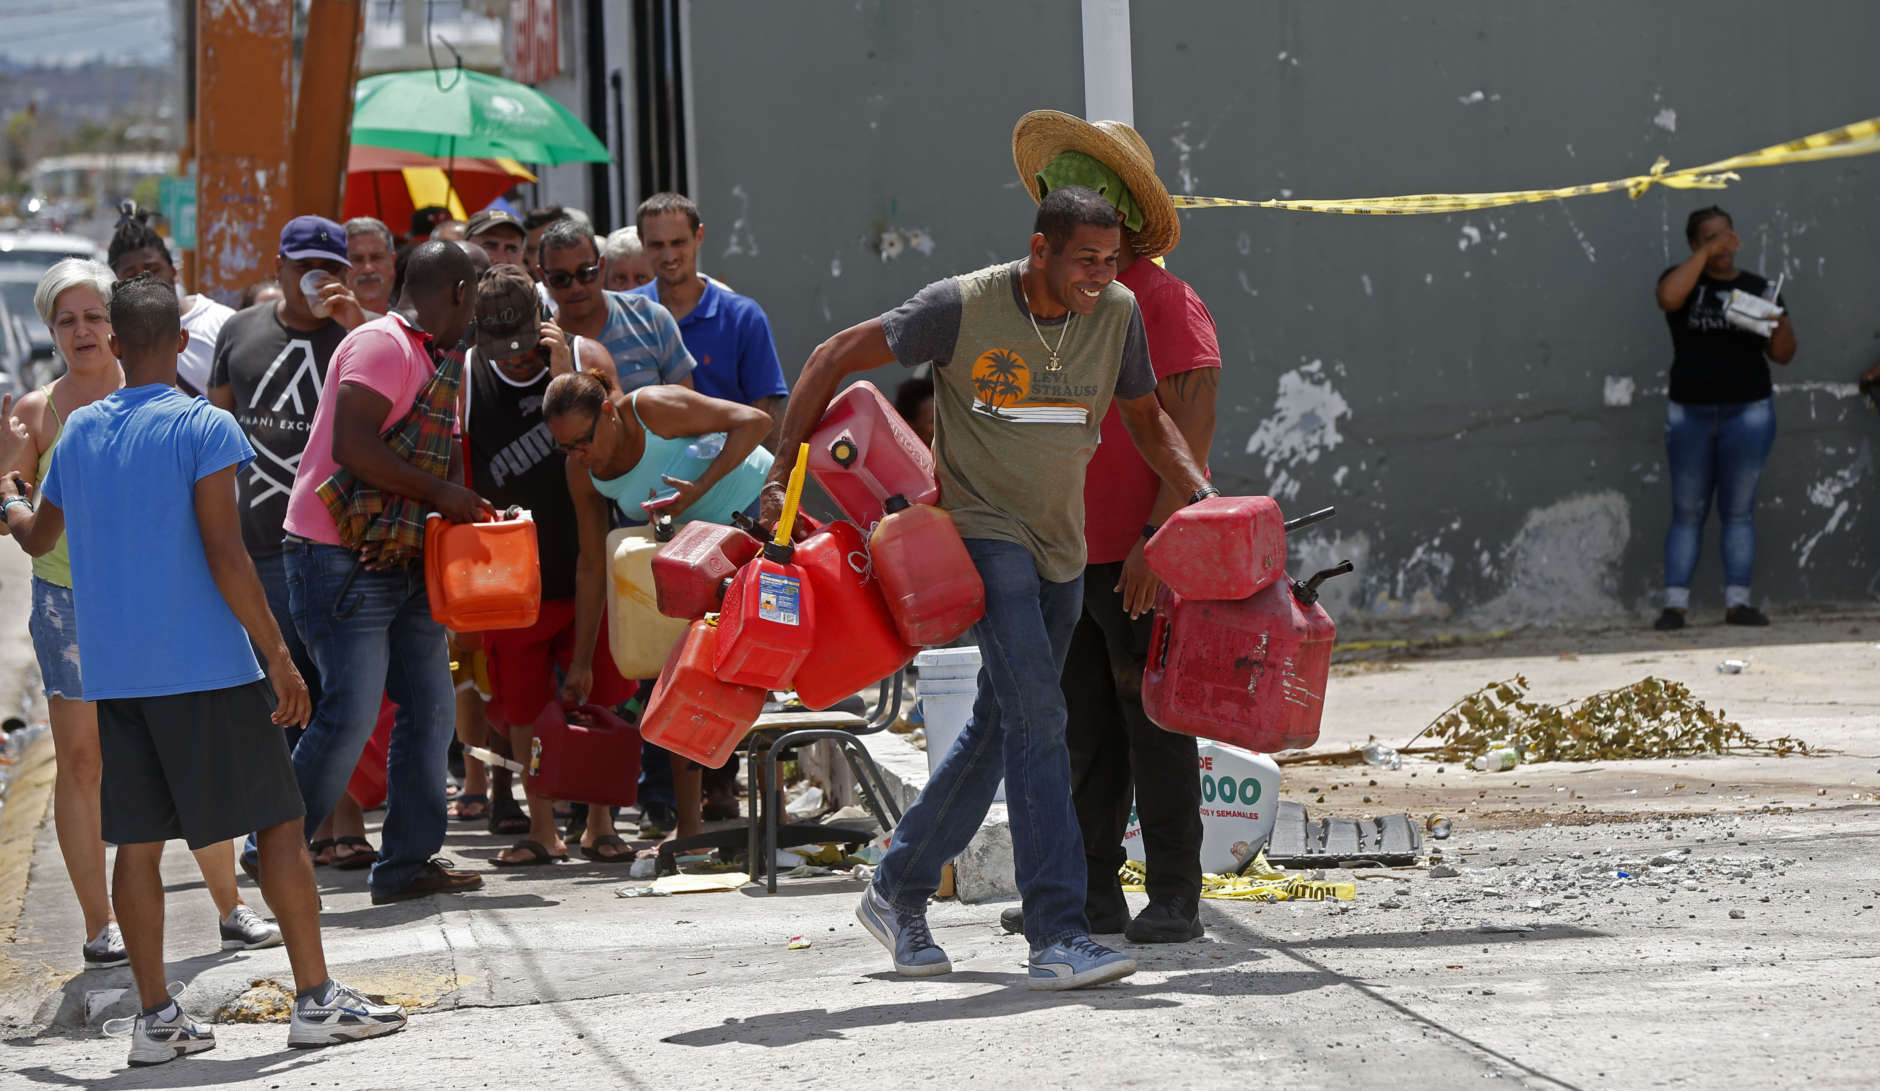 A man runs as people line up with gas cans to get fuel from a gas station, in the aftermath of Hurricane Maria, in San Juan, Puerto Rico, Monday, Sept. 25, 2017. The U.S. ramped up its response Monday to the humanitarian crisis in Puerto Rico while the Trump administration sought to blunt criticism that its response to Hurricane Maria has fallen short of it efforts in Texas and Florida after the recent hurricanes there. (AP Photo/Gerald Herbert)